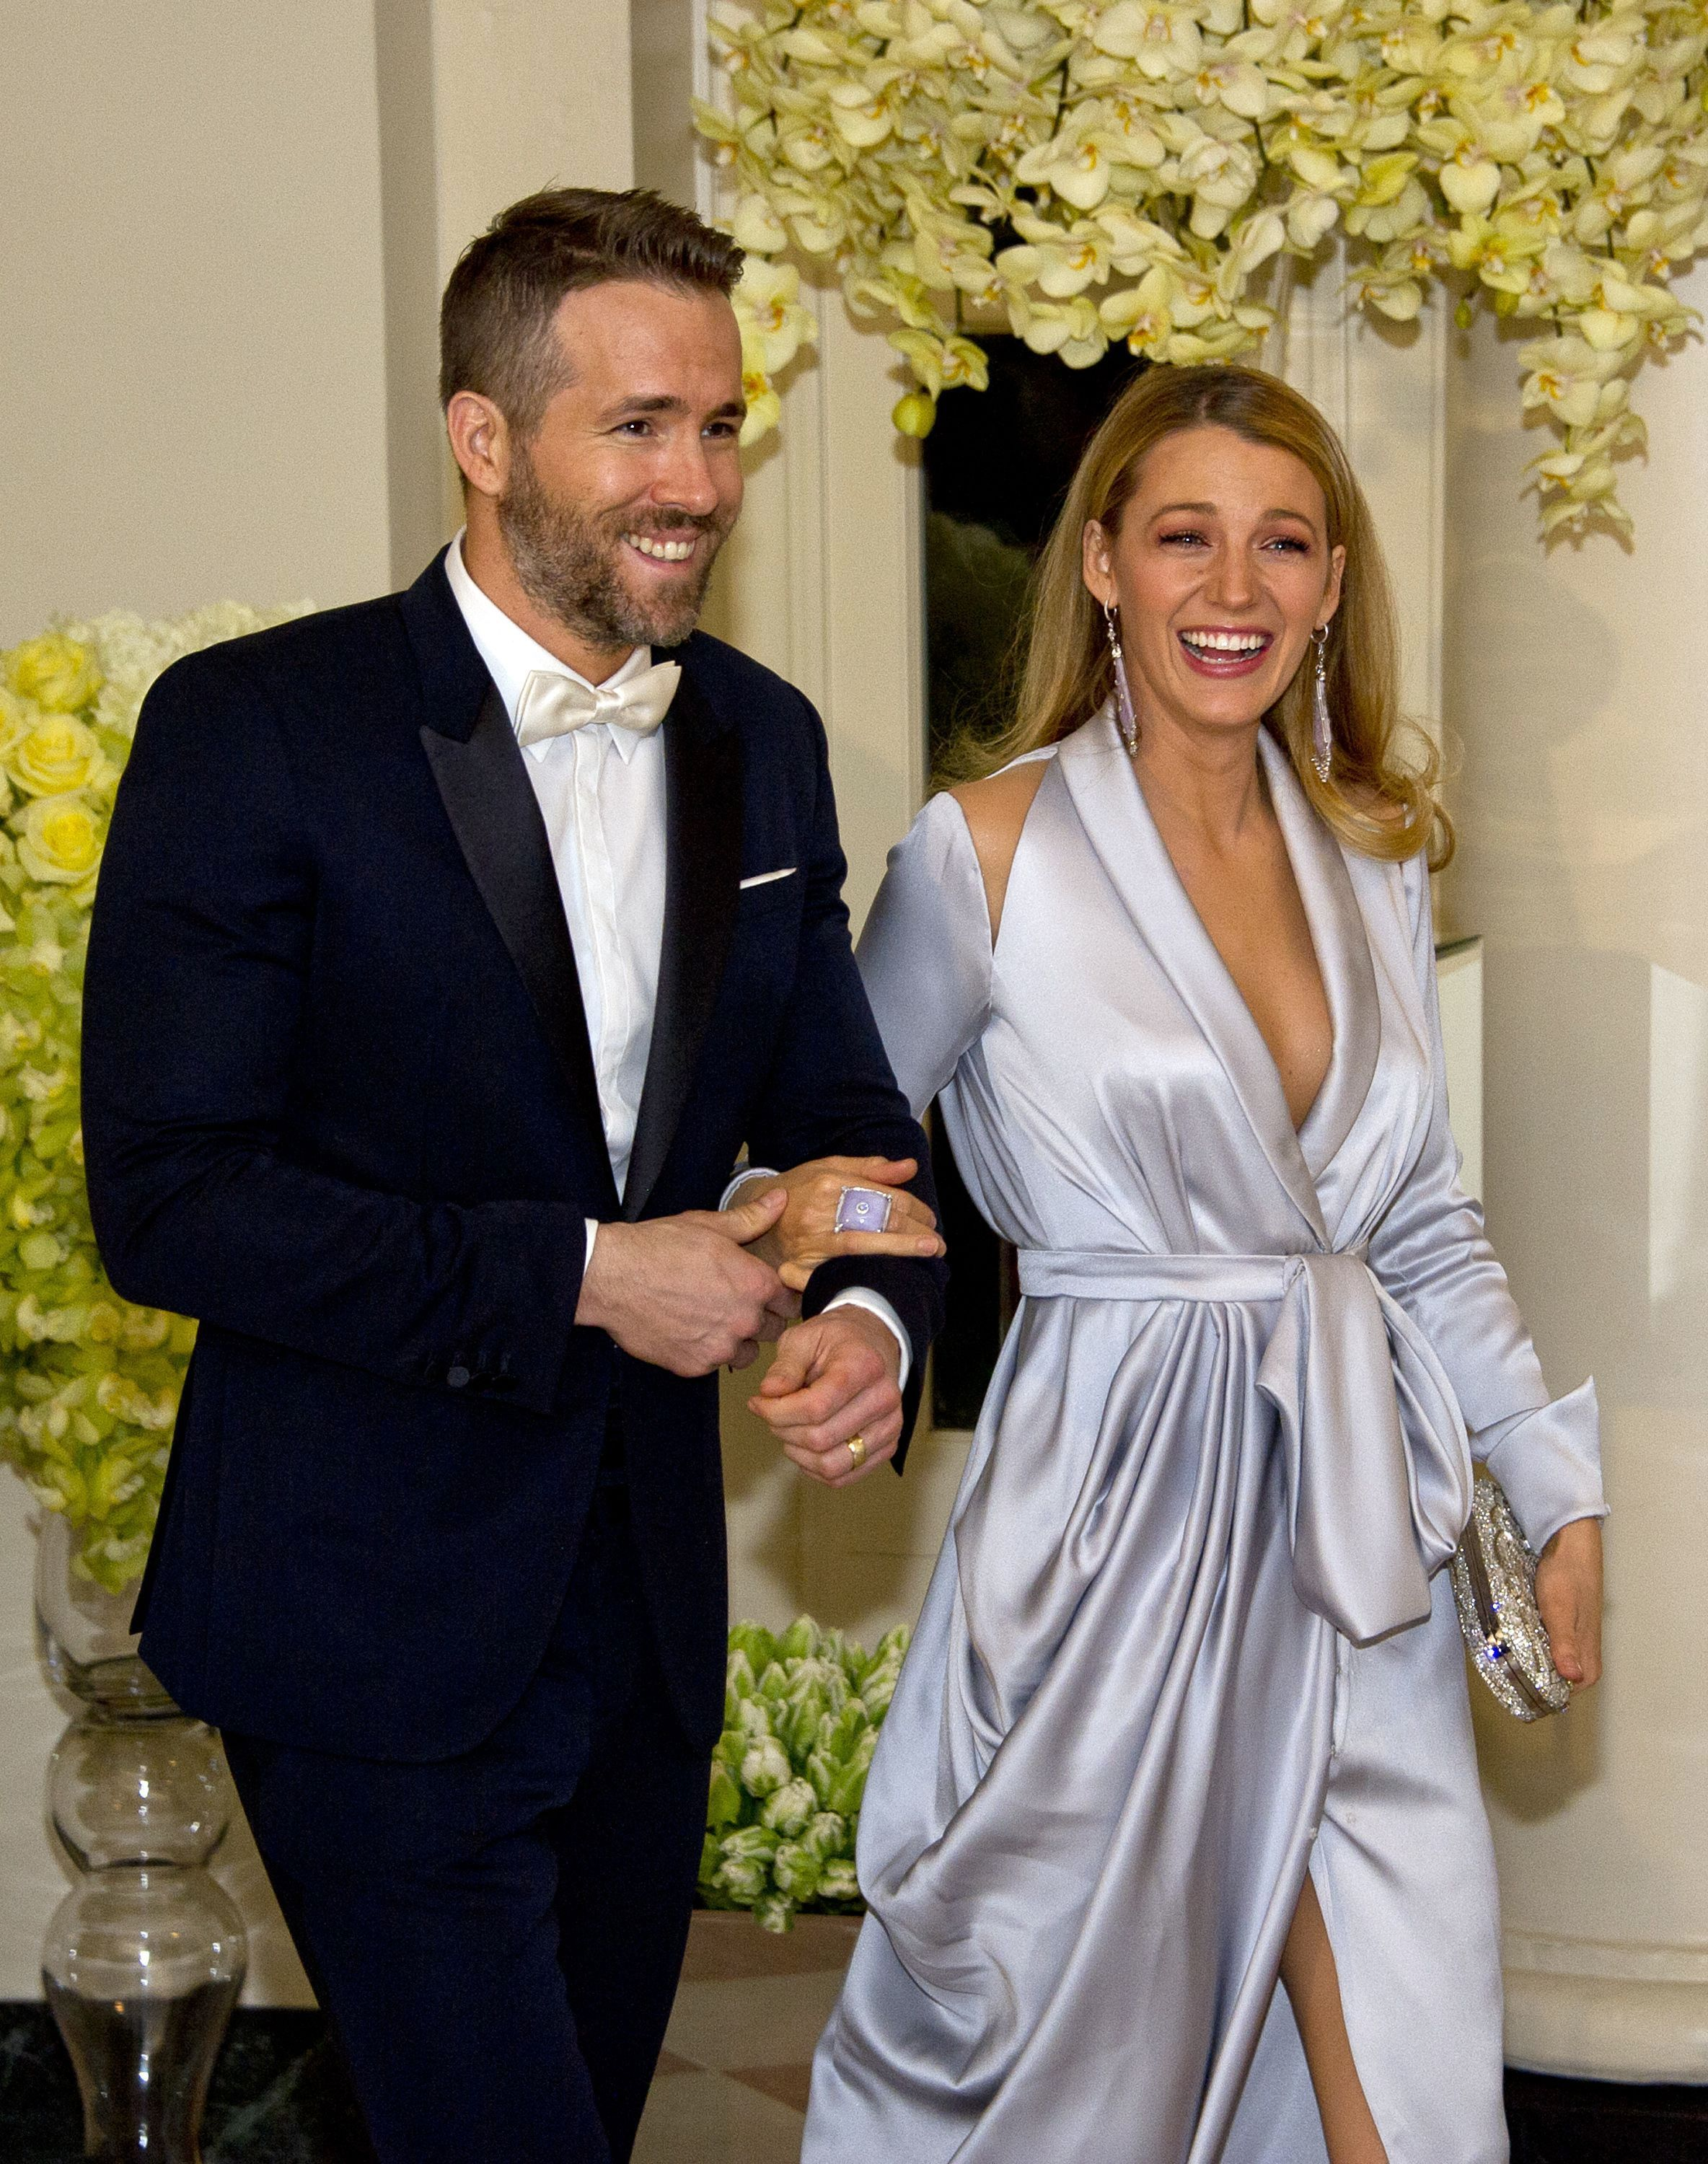 Did Blake Lively and Ryan Reynolds have another girl?